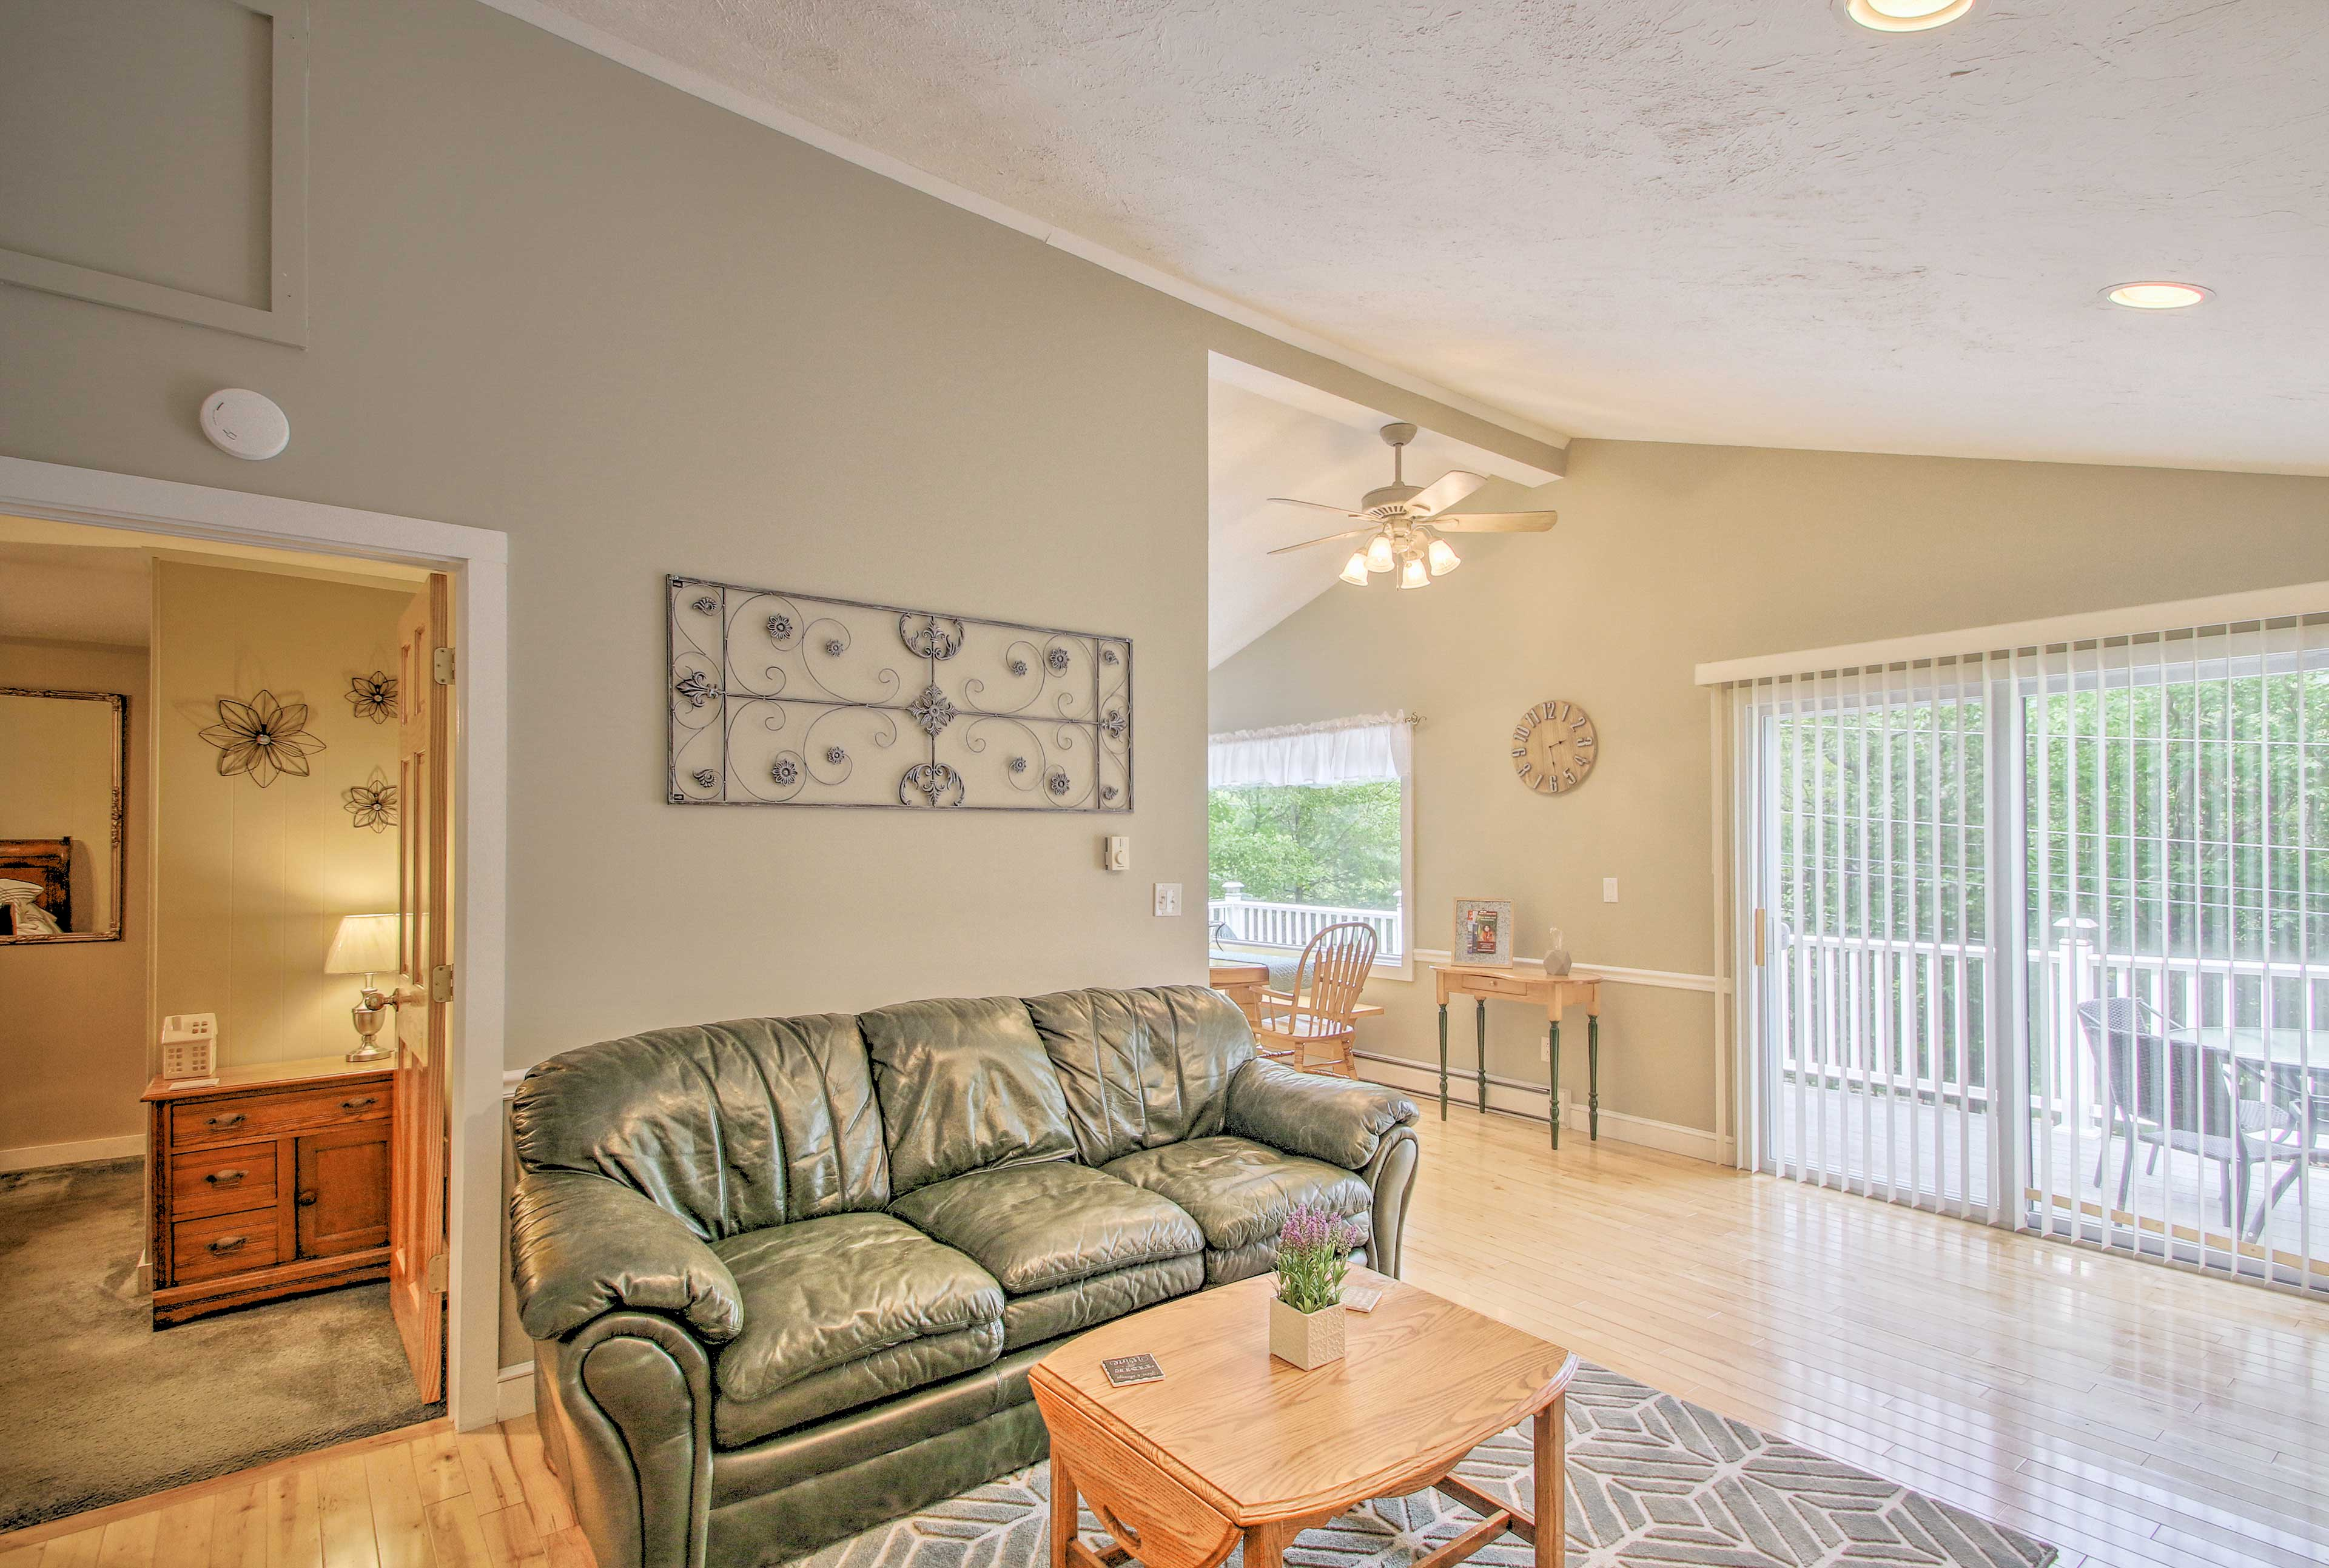 The second living space provides seating for an additional 3 guests.